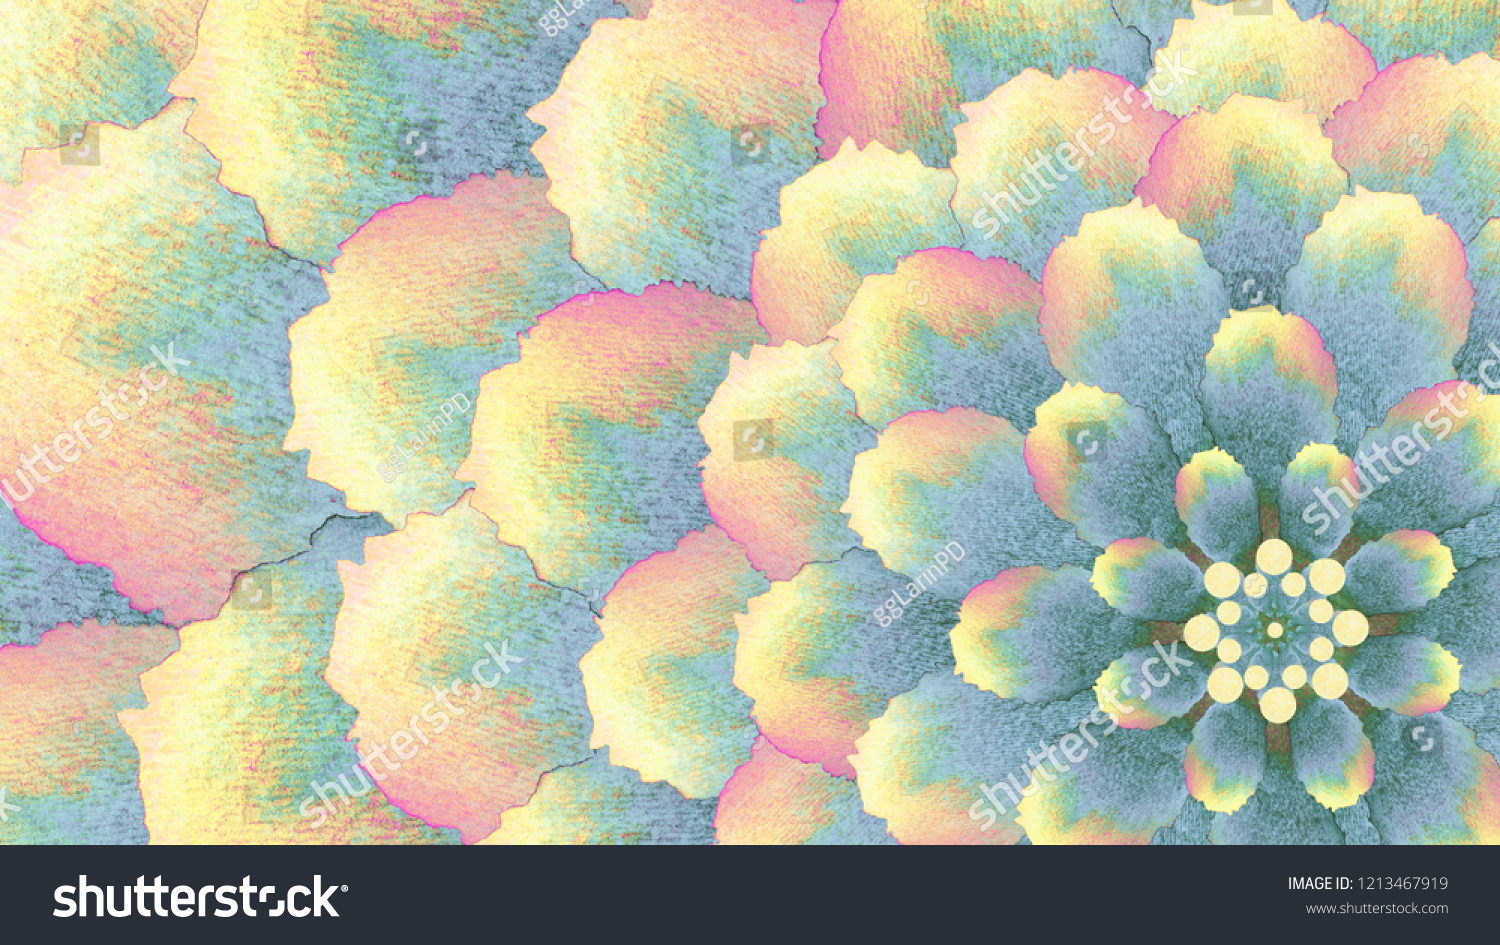 Abstract Watercolor Flower Desktop Wallpaper Screensaver In Shades Of Blue Yellow Pink